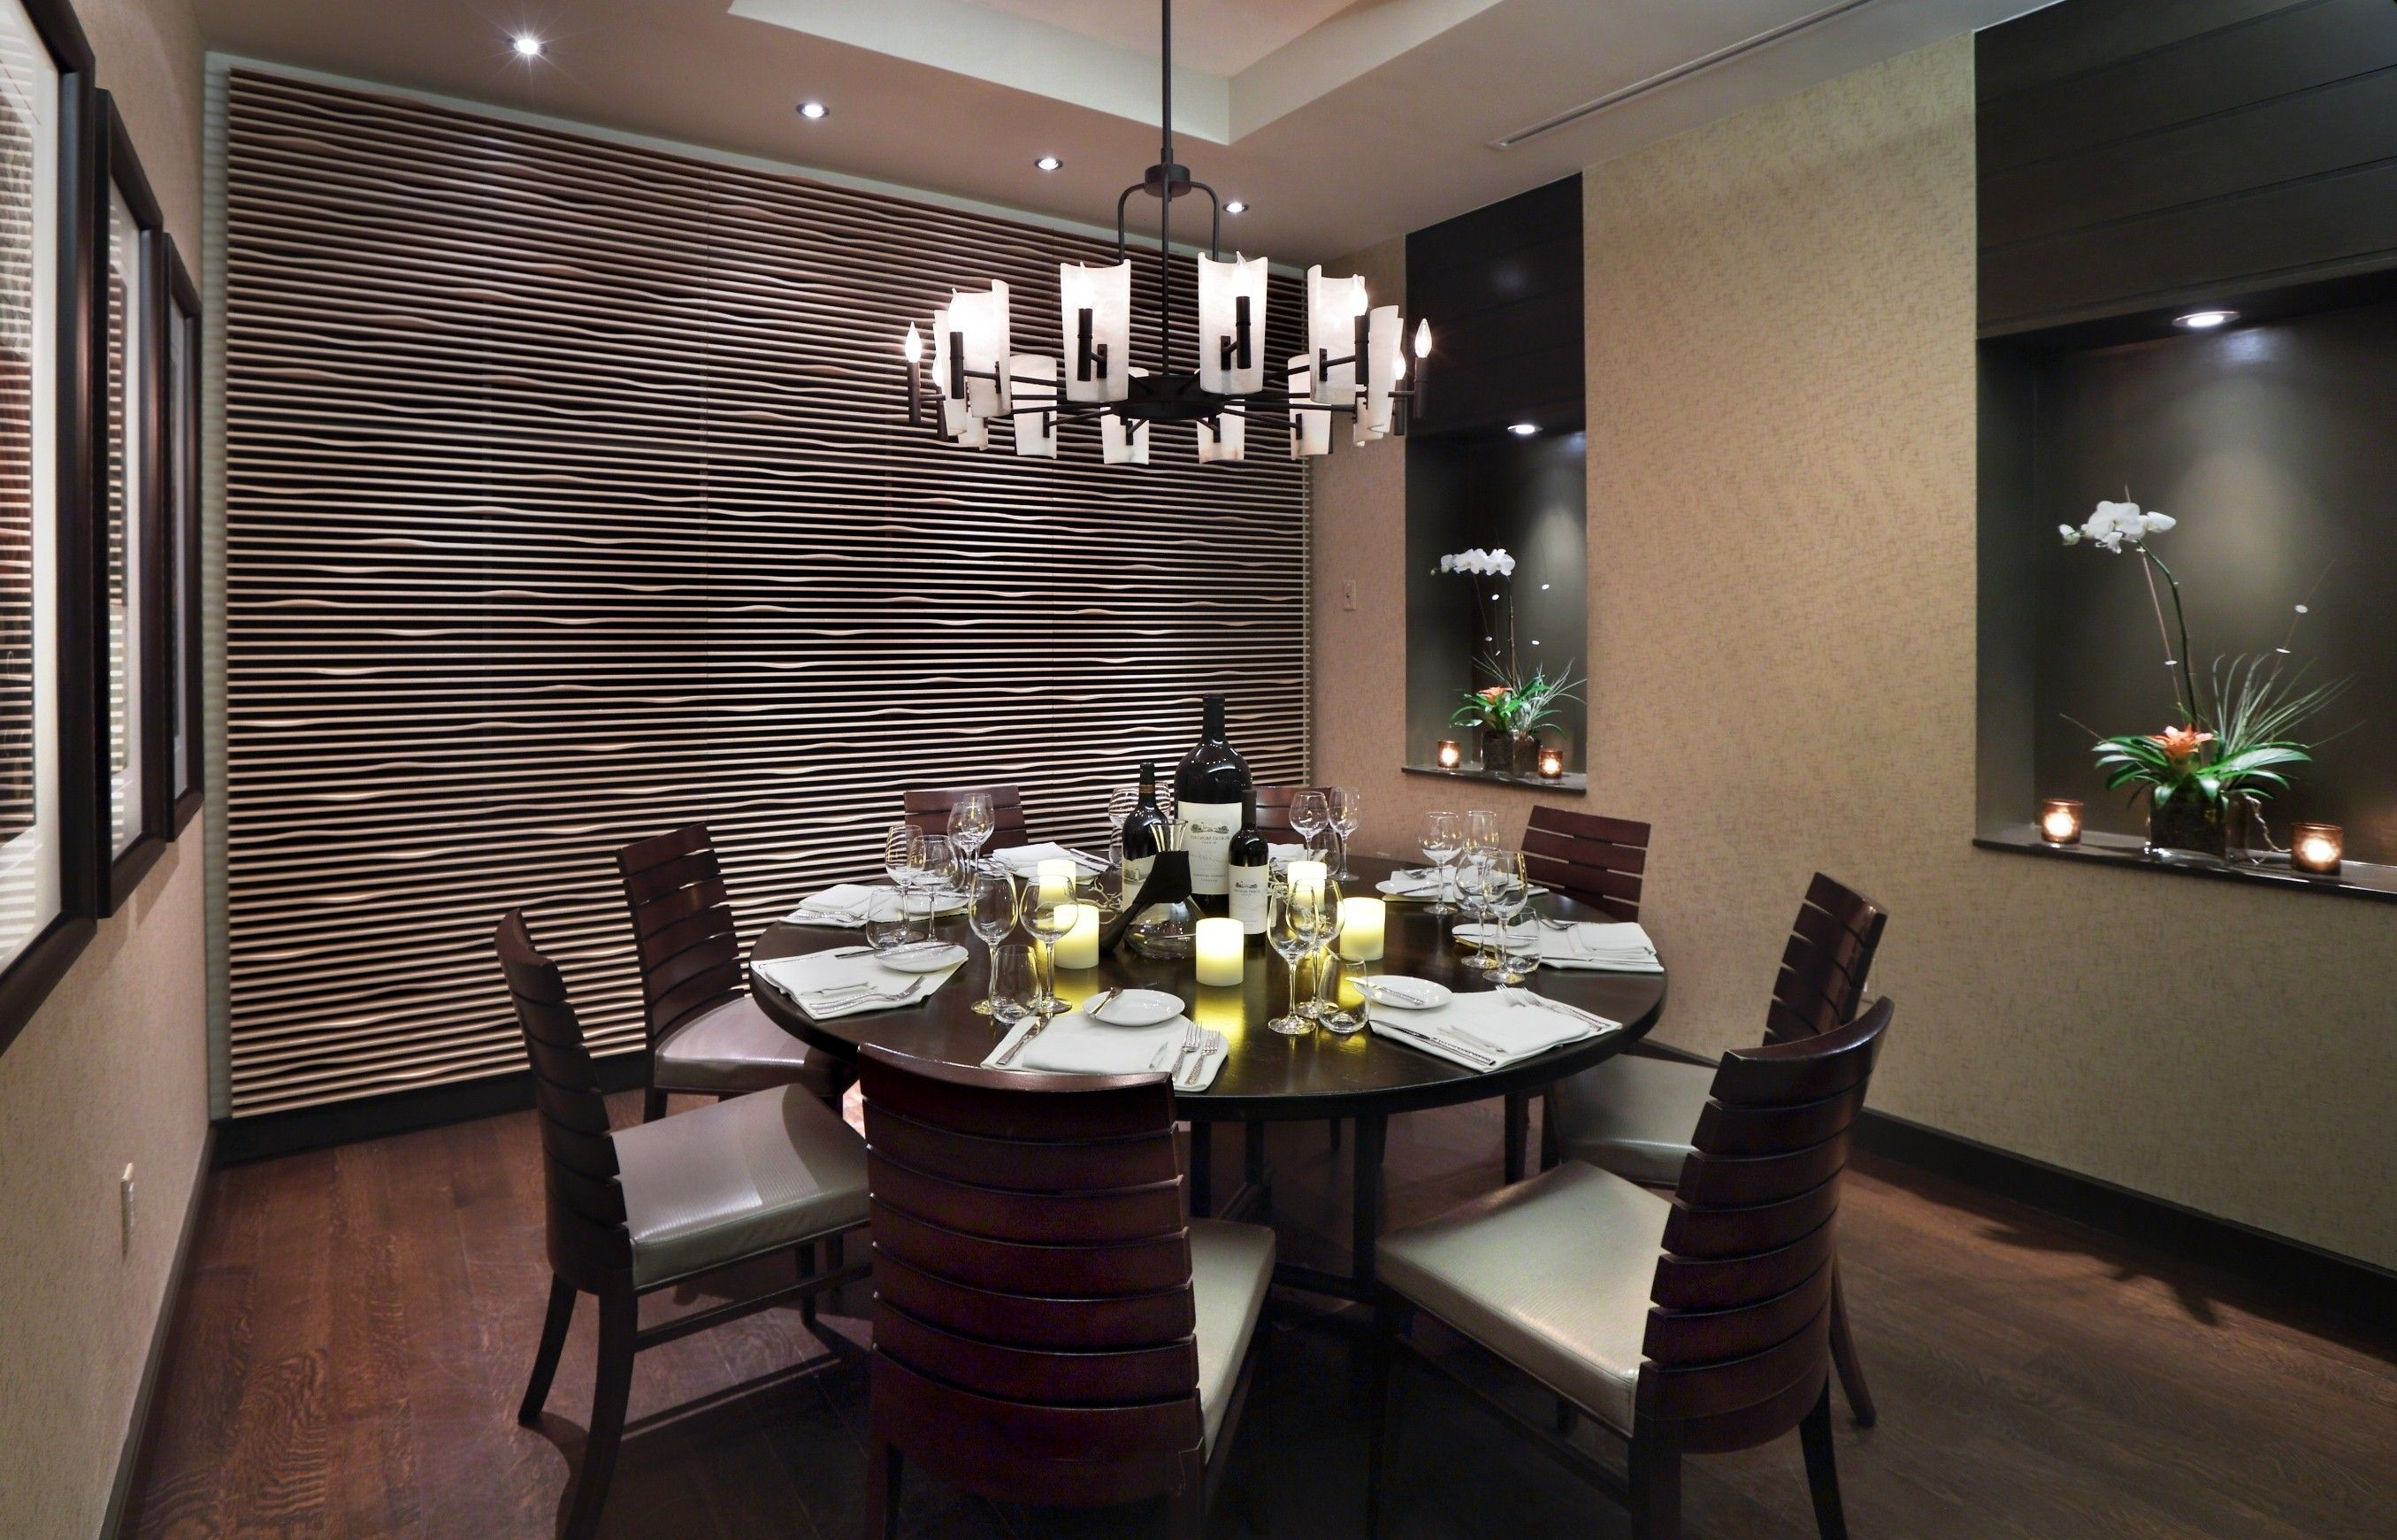 Contemporary Lighting For Dining Room Amazing Dining Room Yellow And Black Dining Chairs Modern Dining Room Design Inspiration